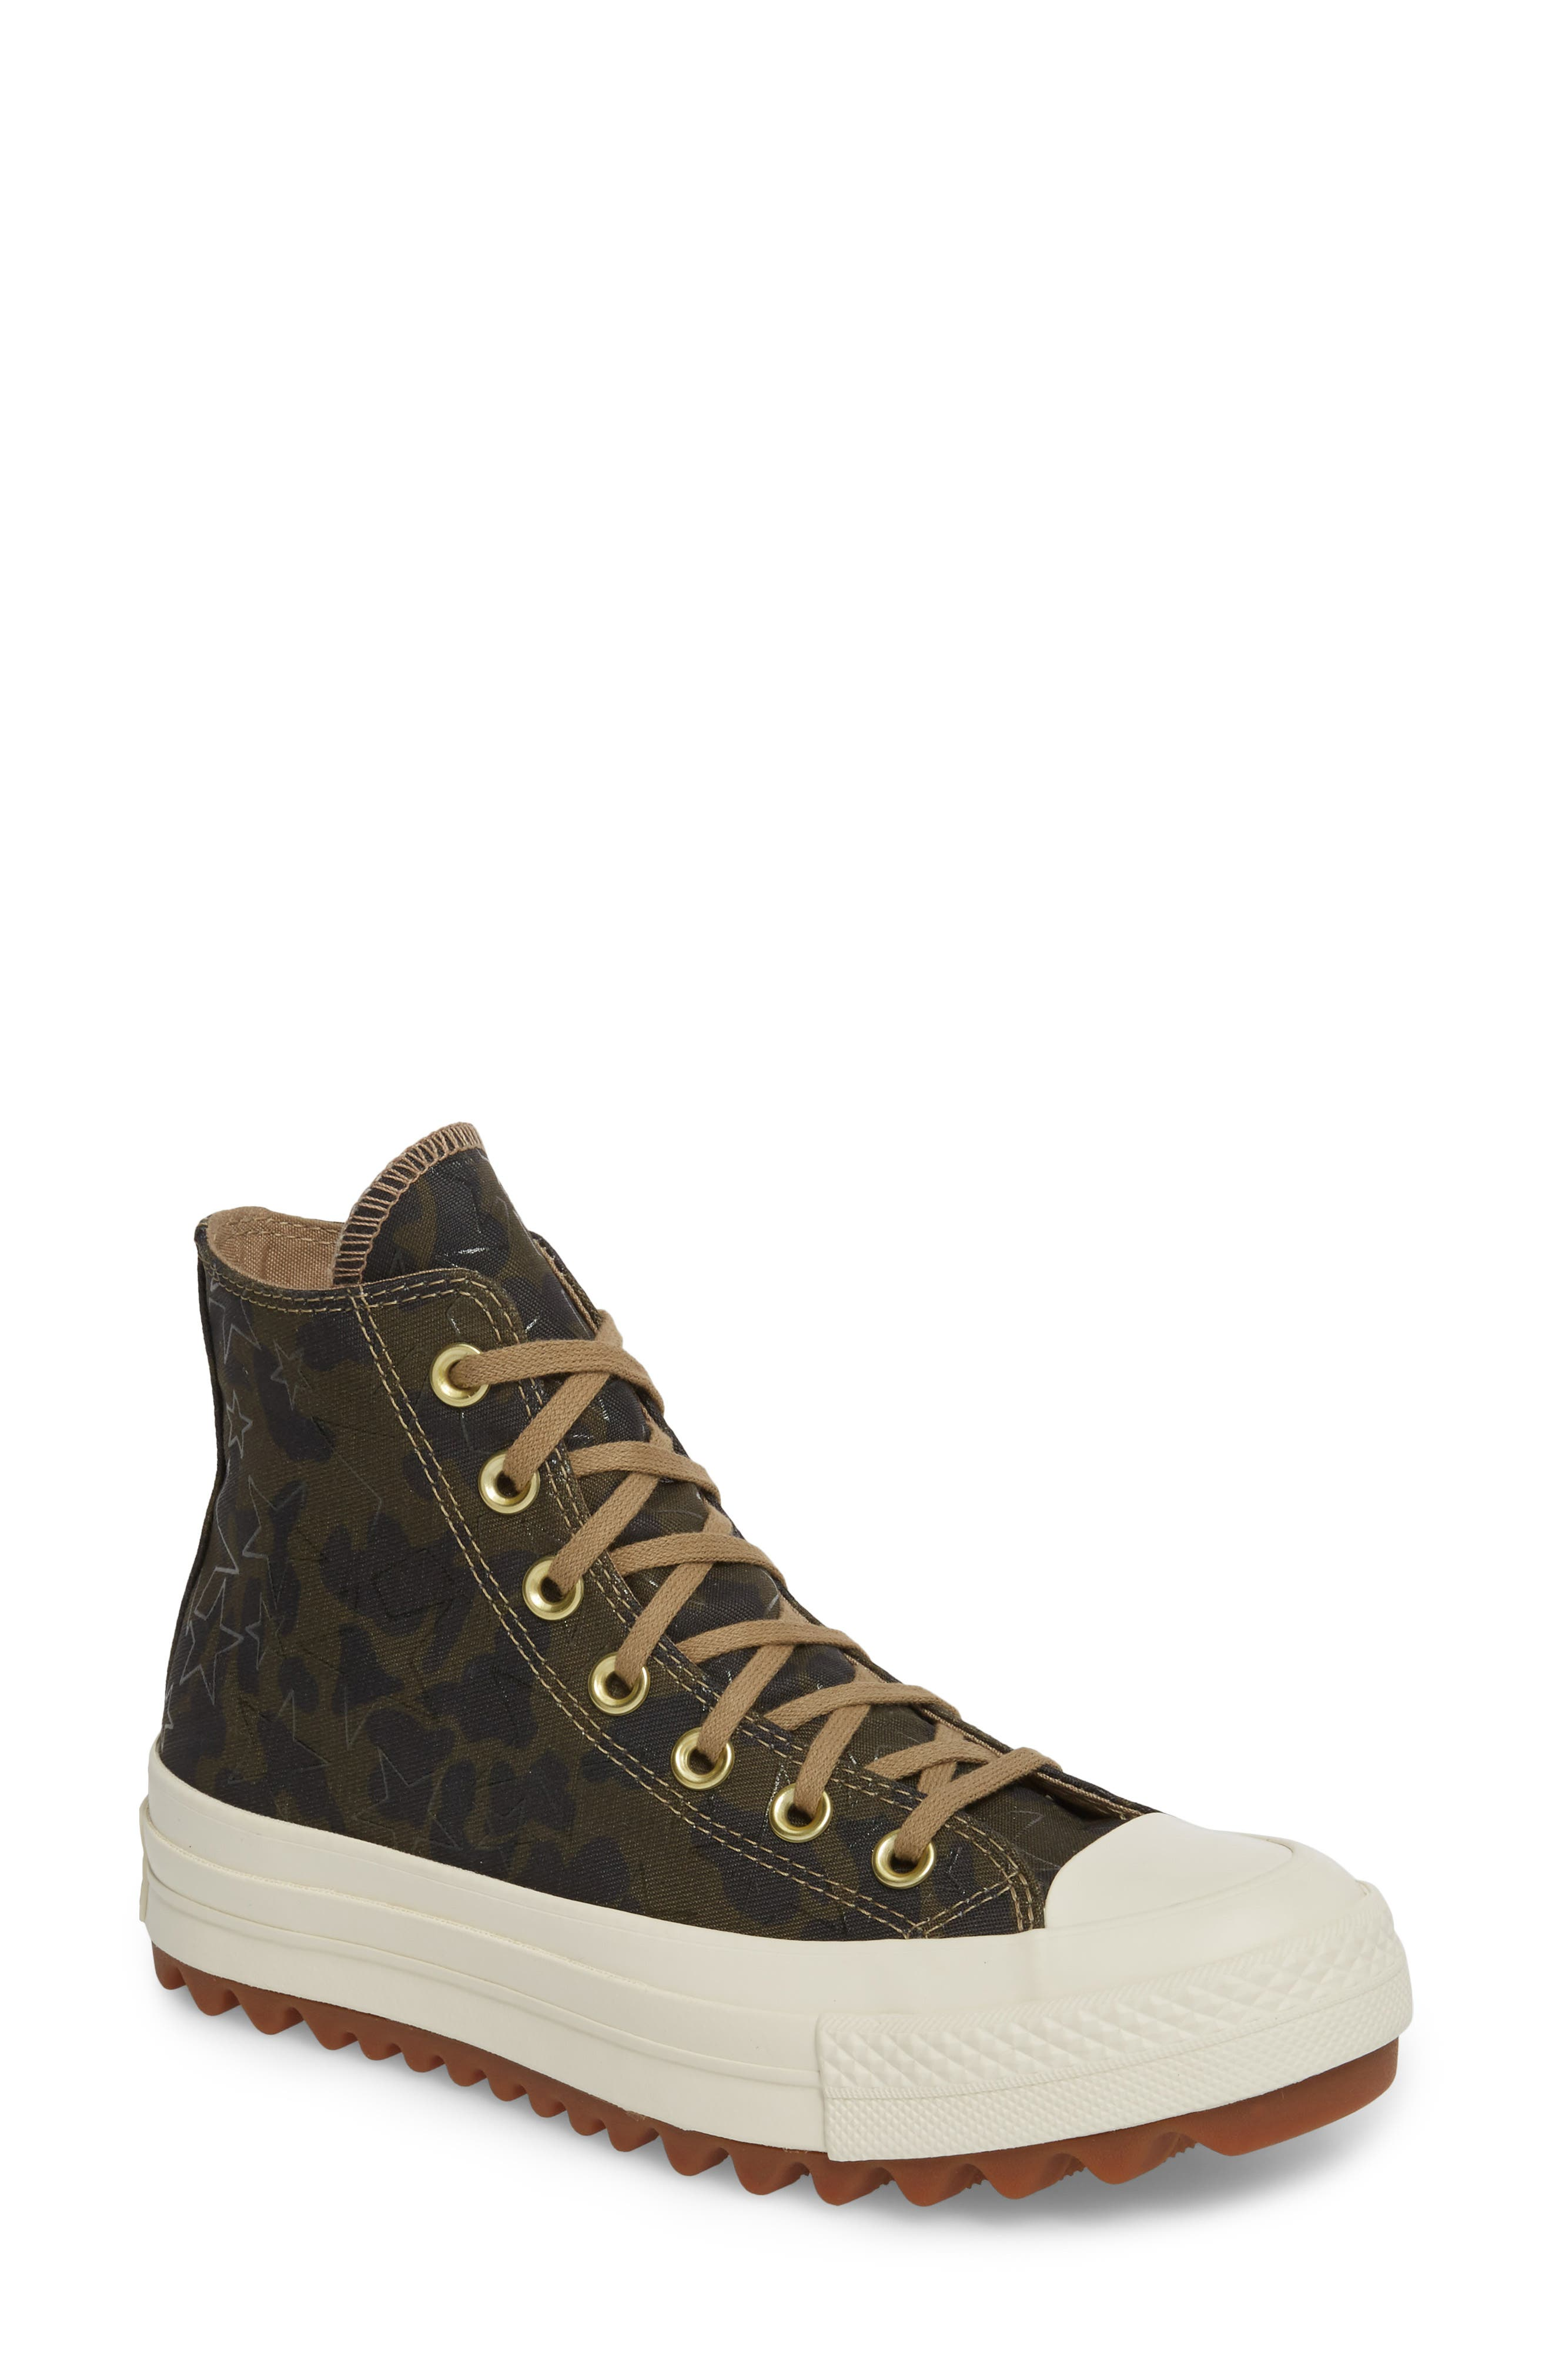 Chuck Taylor<sup>®</sup> All Star<sup>®</sup> Lift Ripple High Top Sneaker,                         Main,                         color, 300